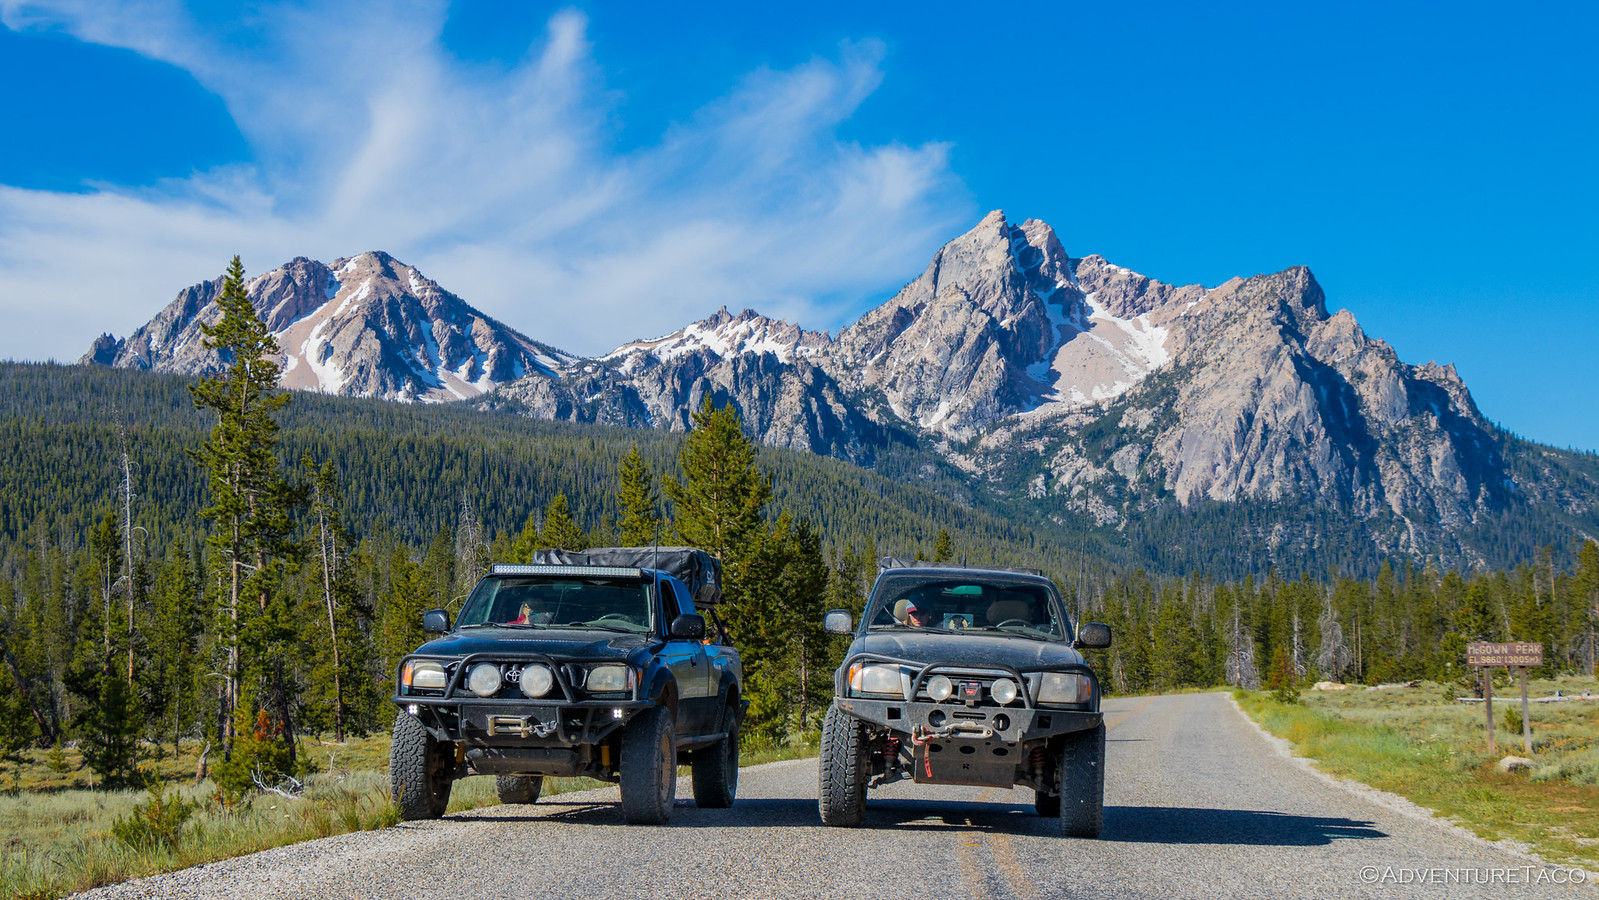 toyota tacomas near sawtooth mountains, idaho